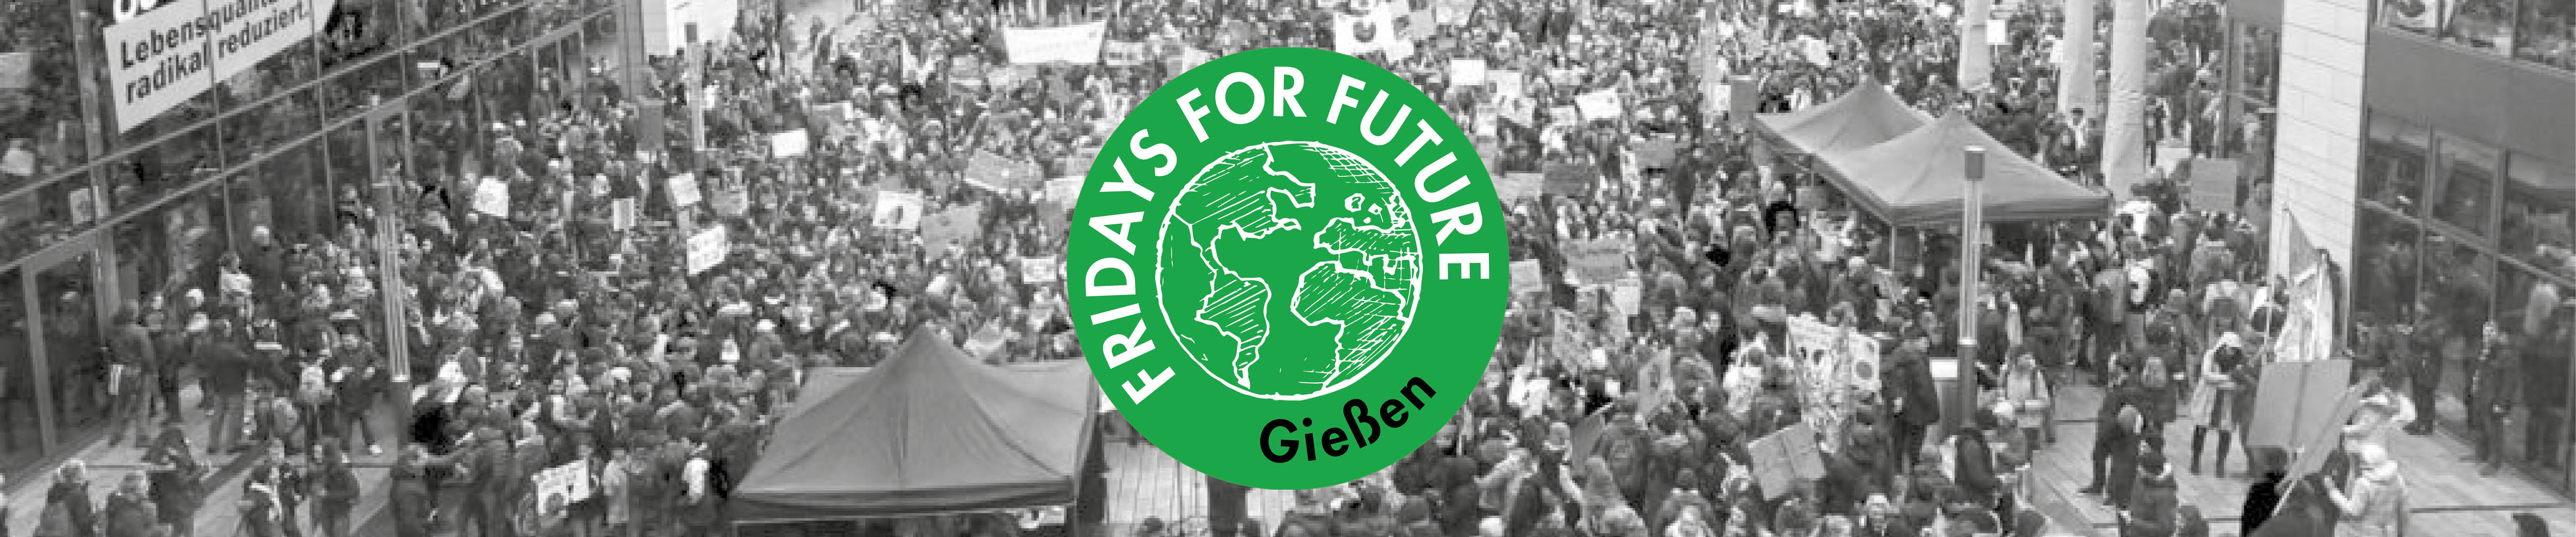 Fridays For Future Gießen